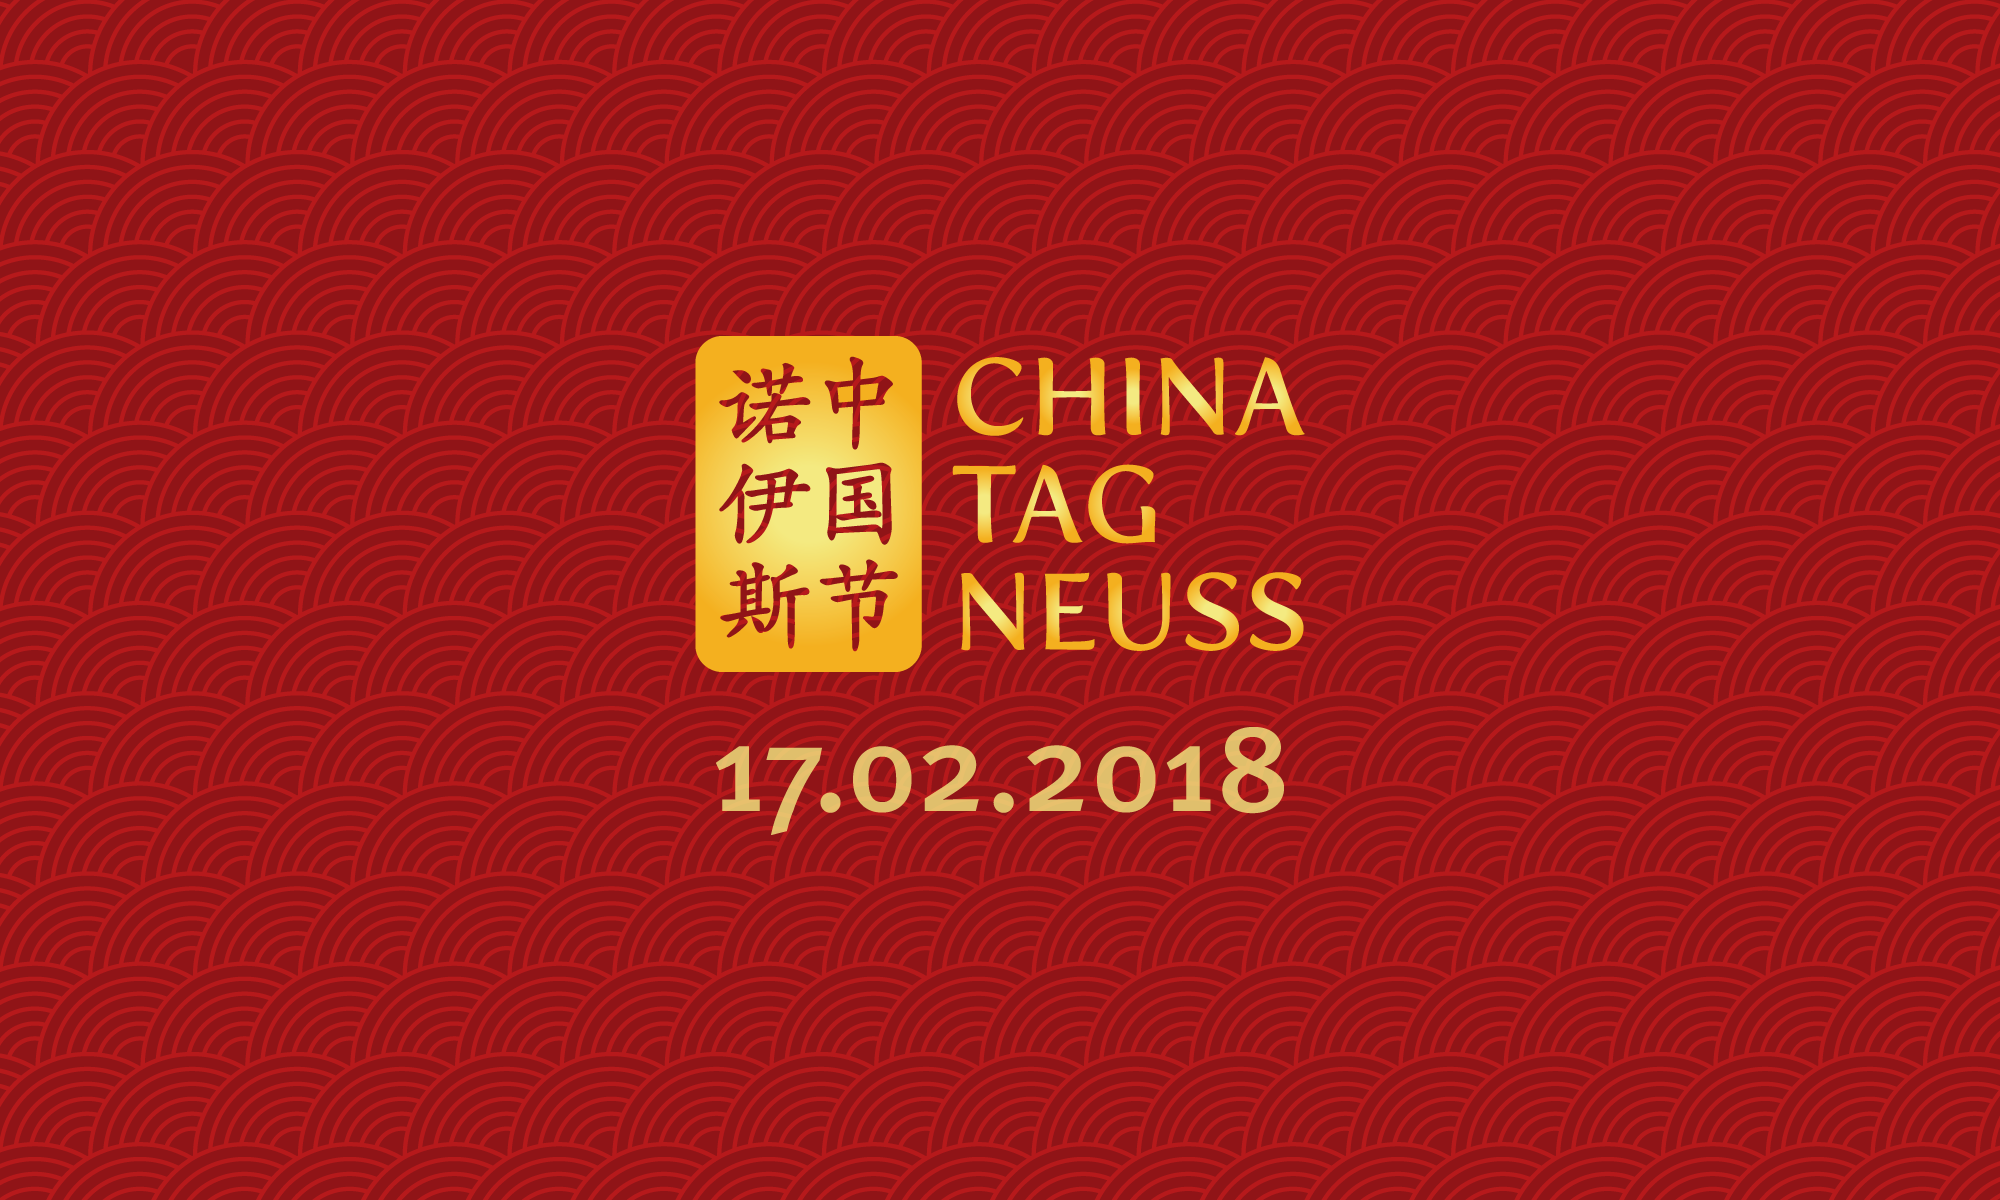 China Tag Neuss